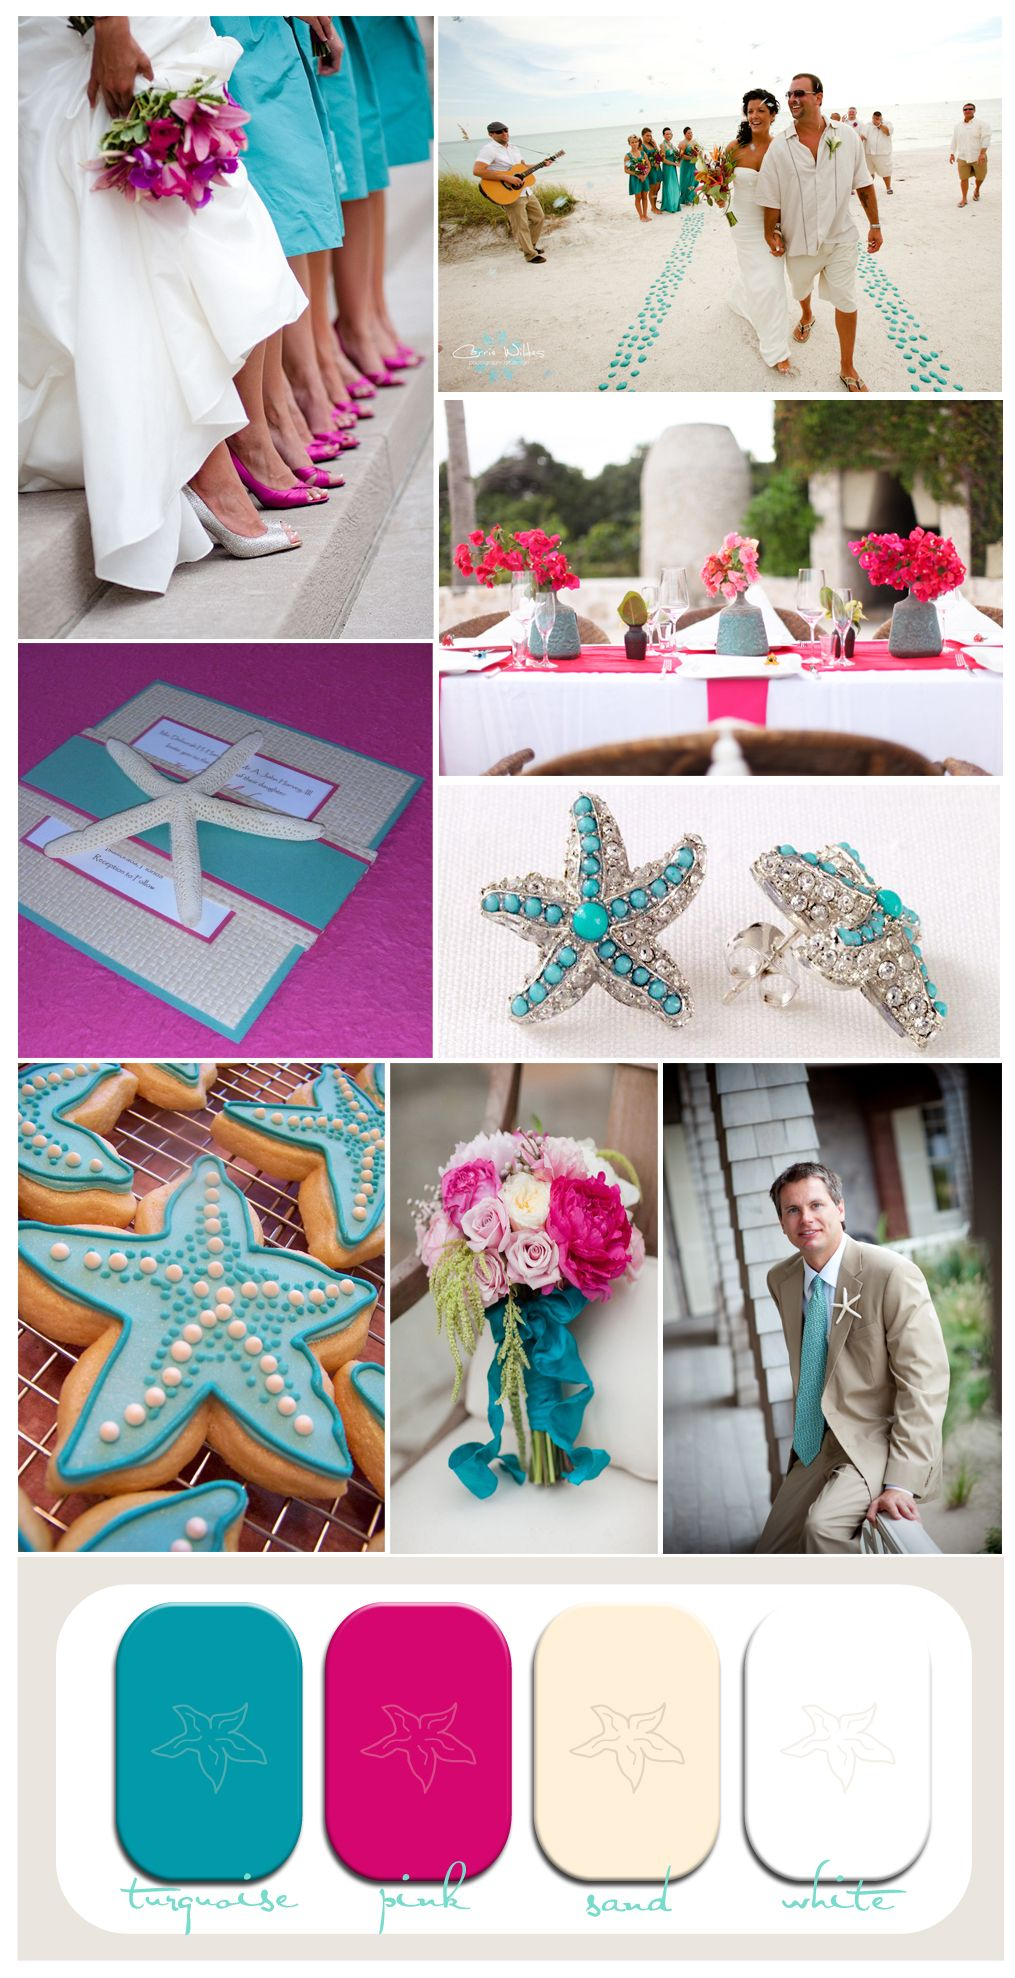 Pink and Turquoise Wedding Inspiration Board for a Starfish Themed Beach Wedding